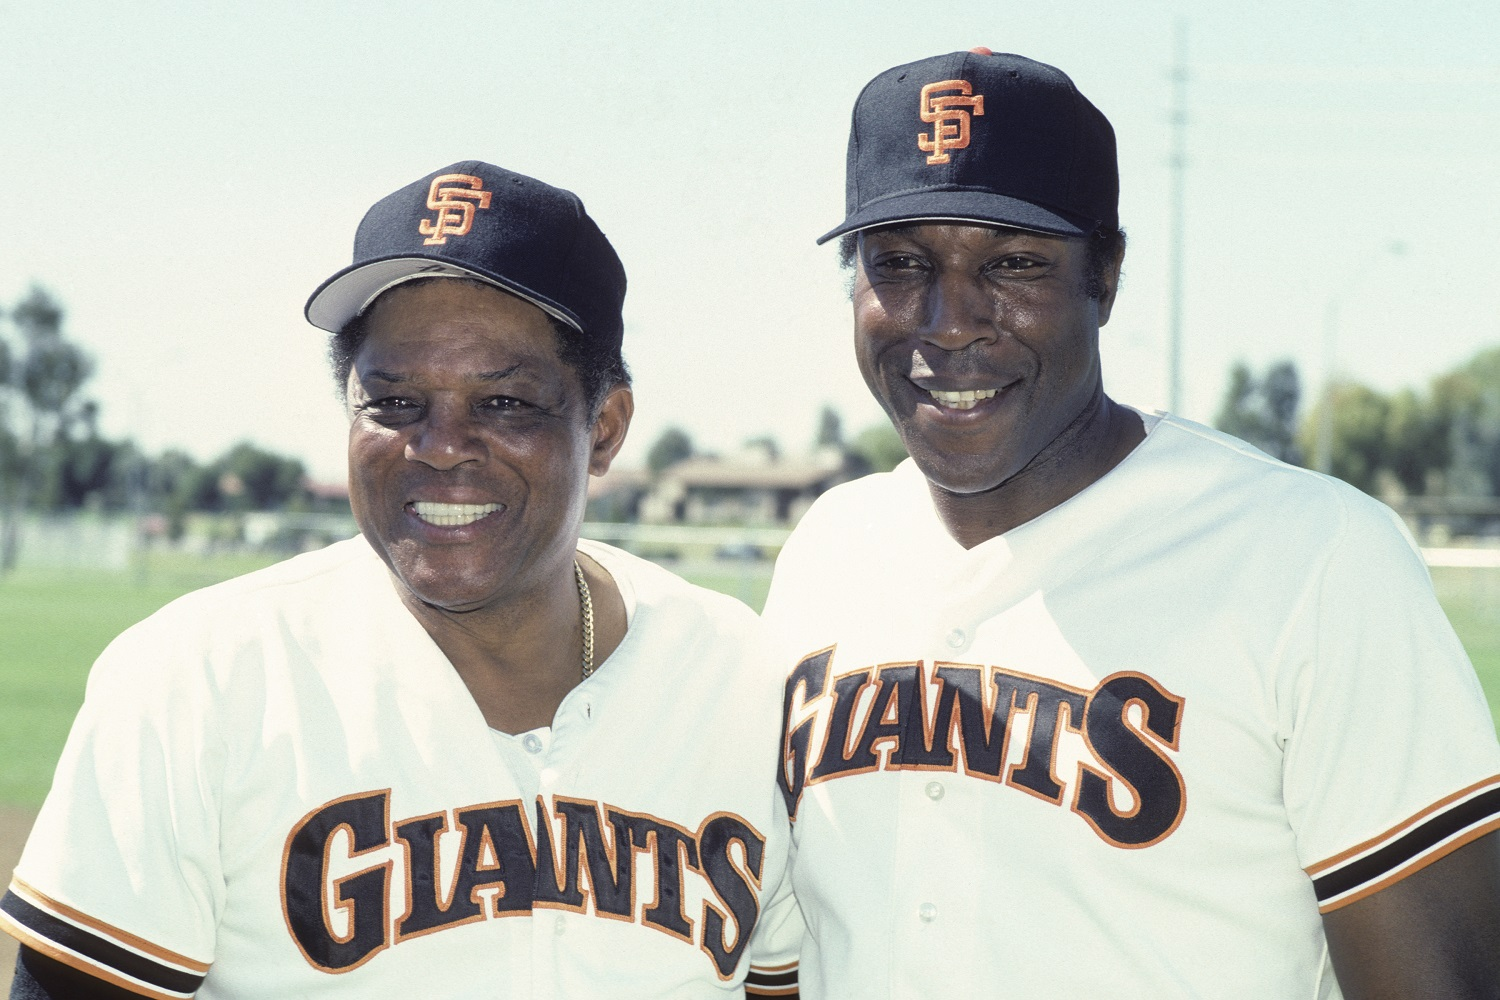 Happy Birthday, Willie Mays, Even if All San Francisco Giants Legends Look the Same to Nancy Pelosi